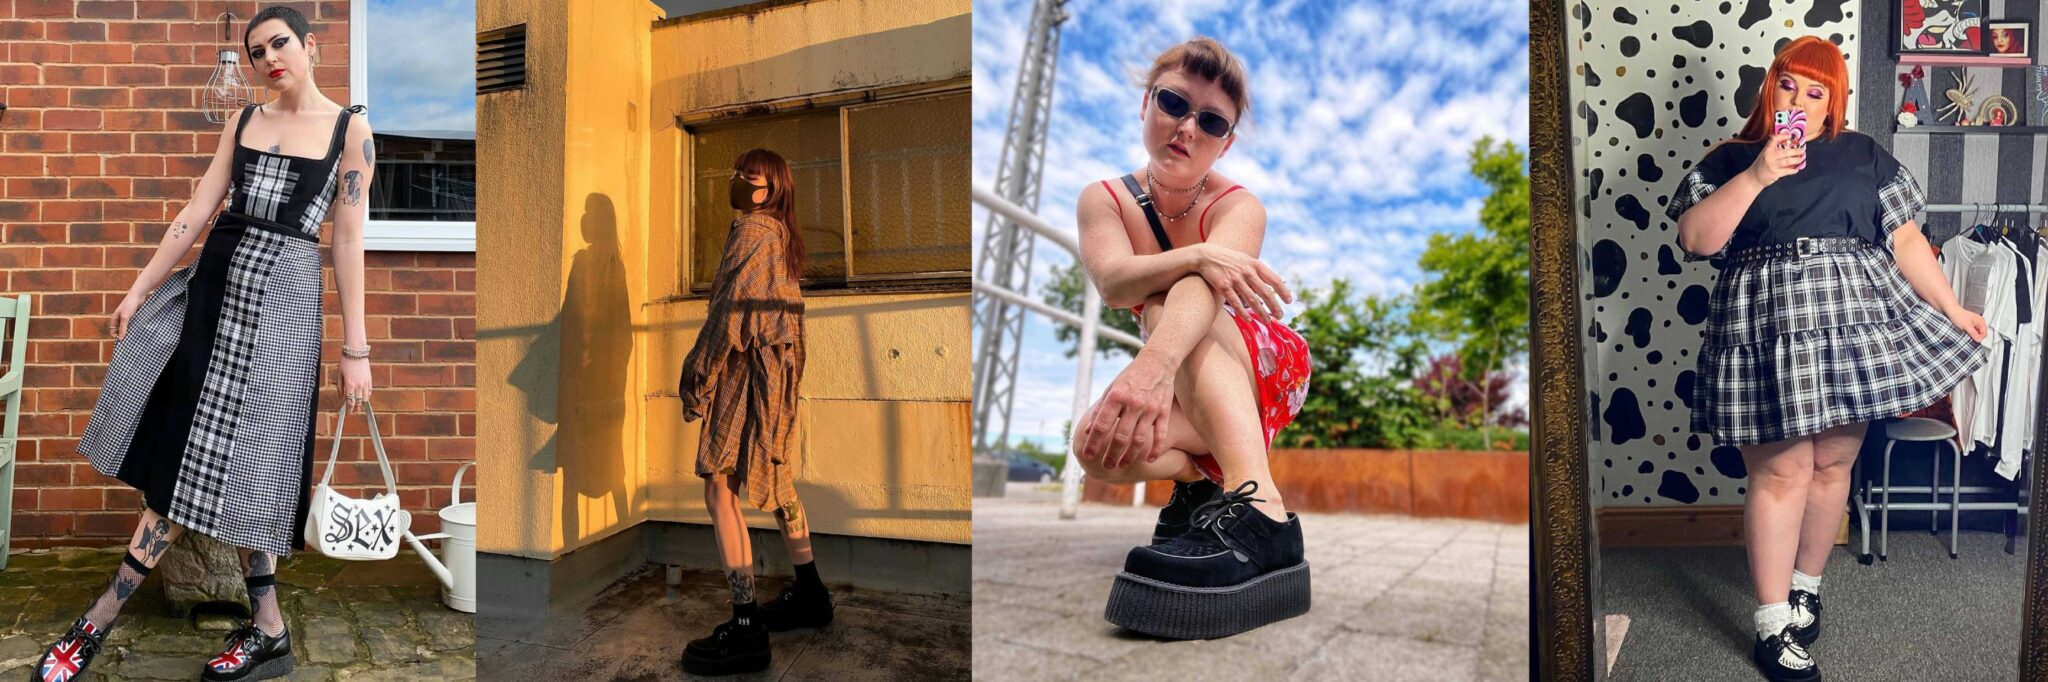 Dress - How To Style Creepers - Underground blog